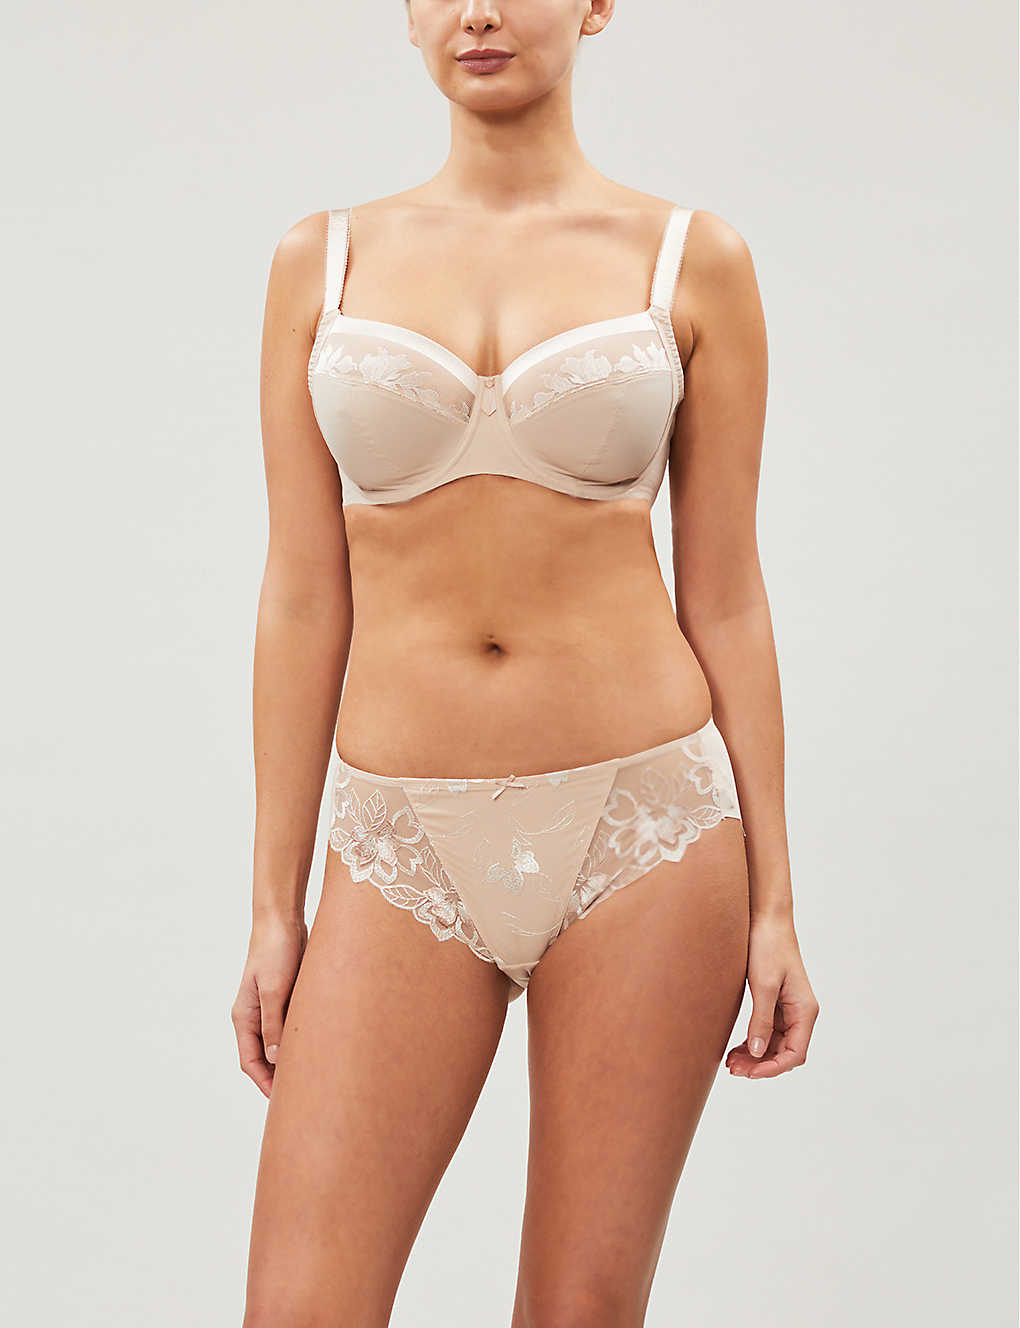 FANTASIE: Illusion underwired stretch bra